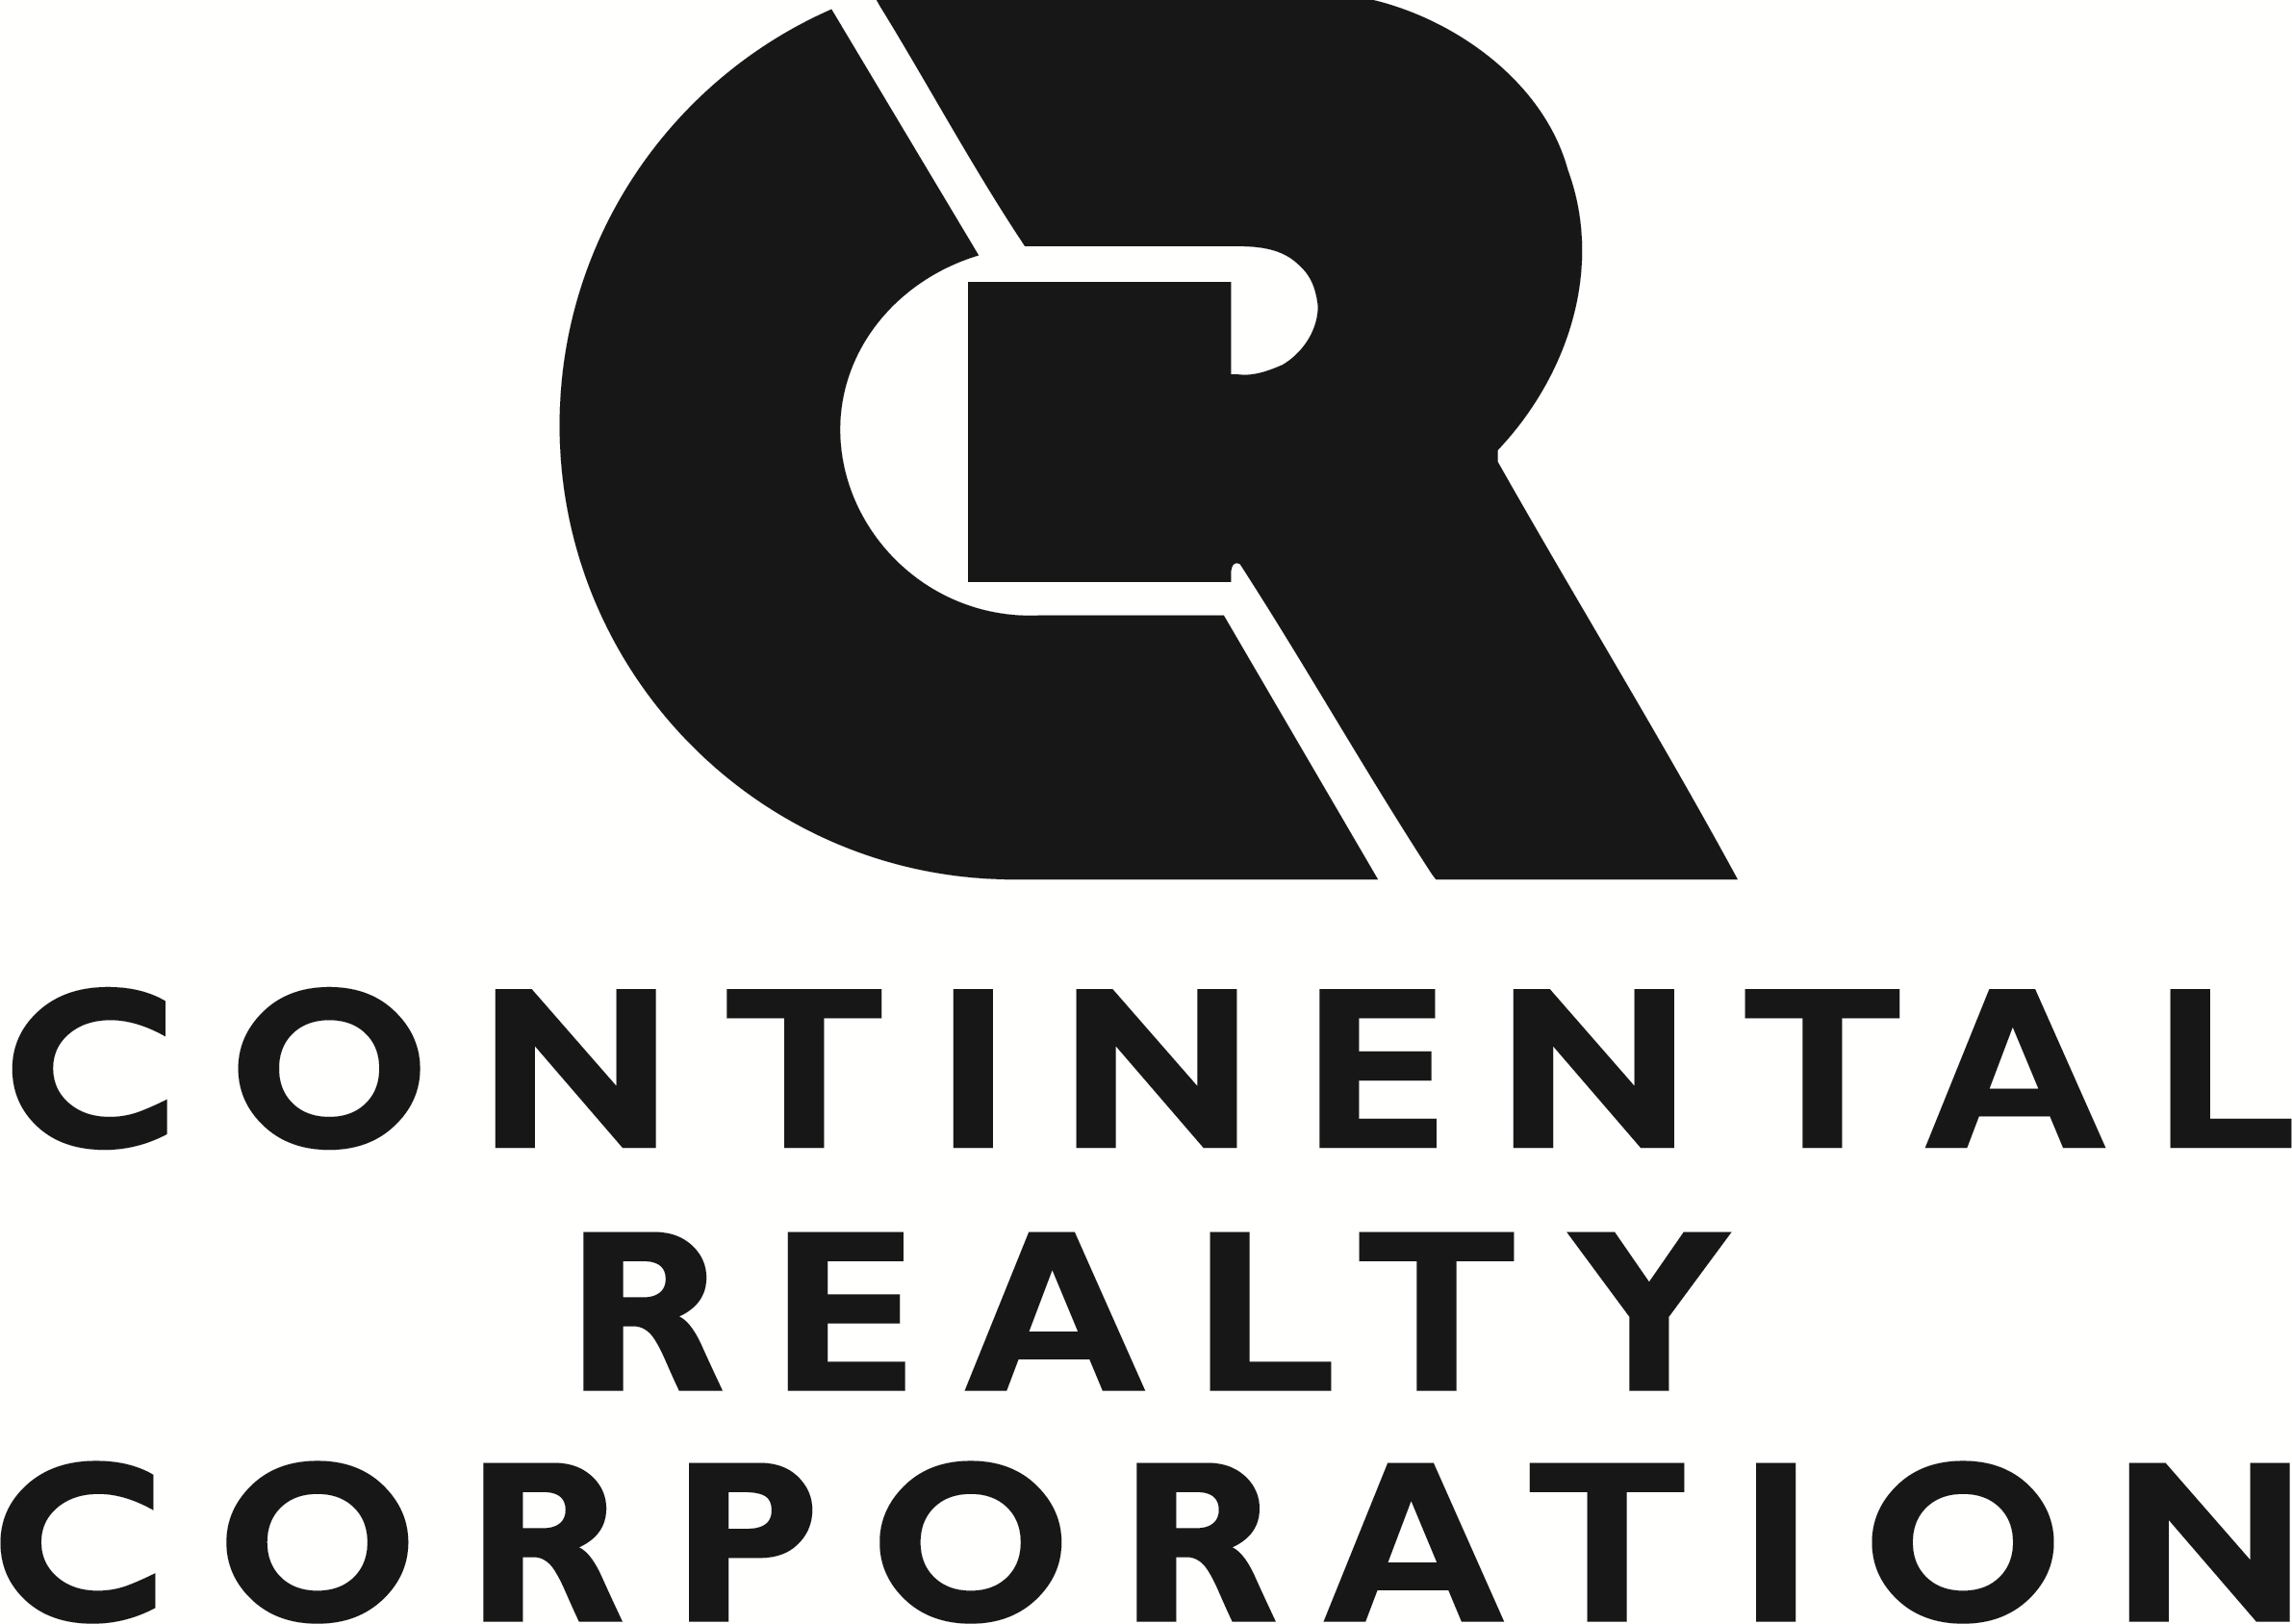 Continental Realty Corporation logo